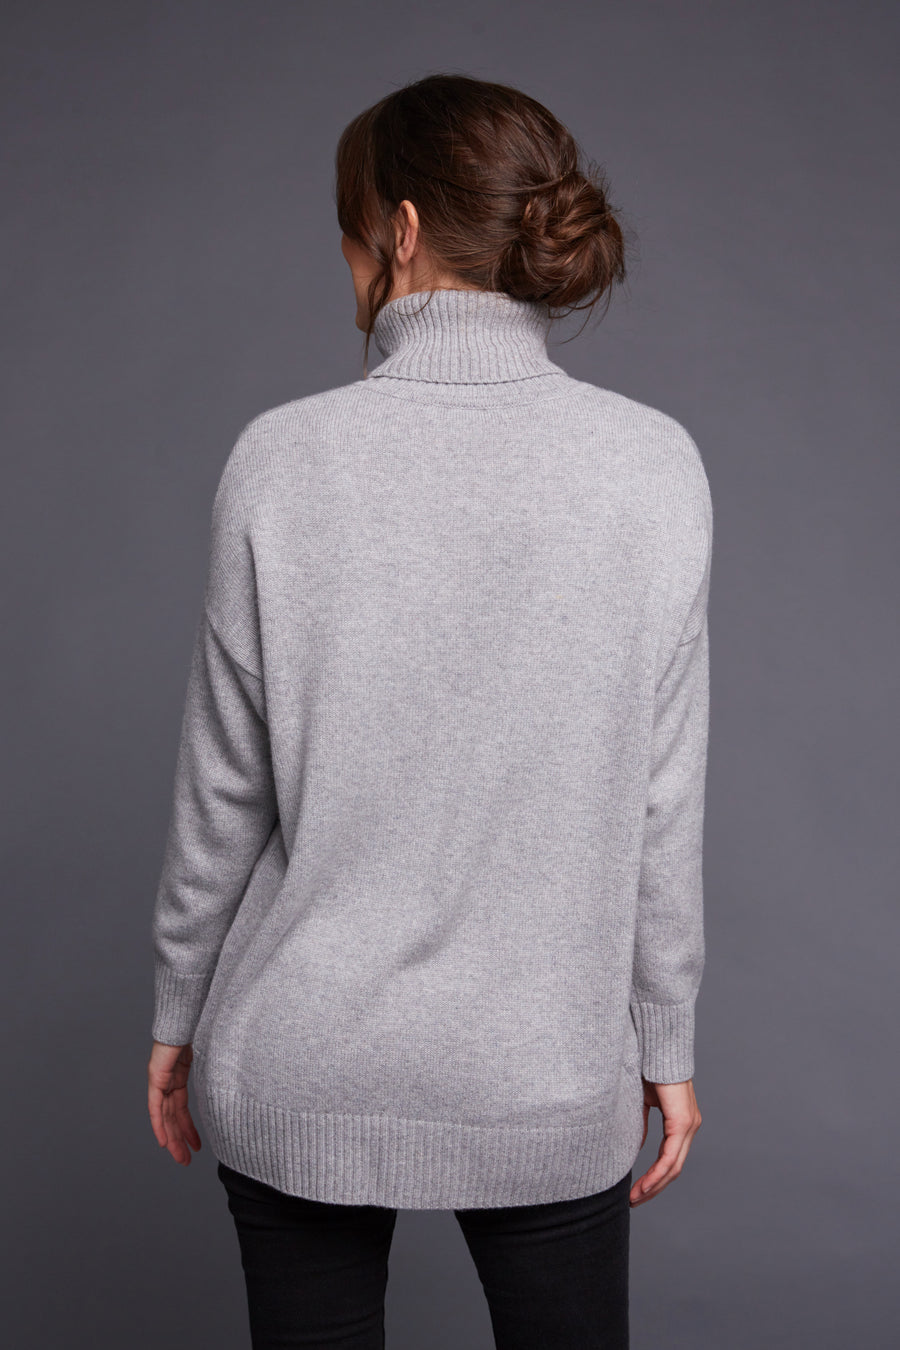 pine cashmere women's turtleneck sweater with long sleeve and relaxed trendy fit  in grey color made with high quality 100% pure organic cashmere